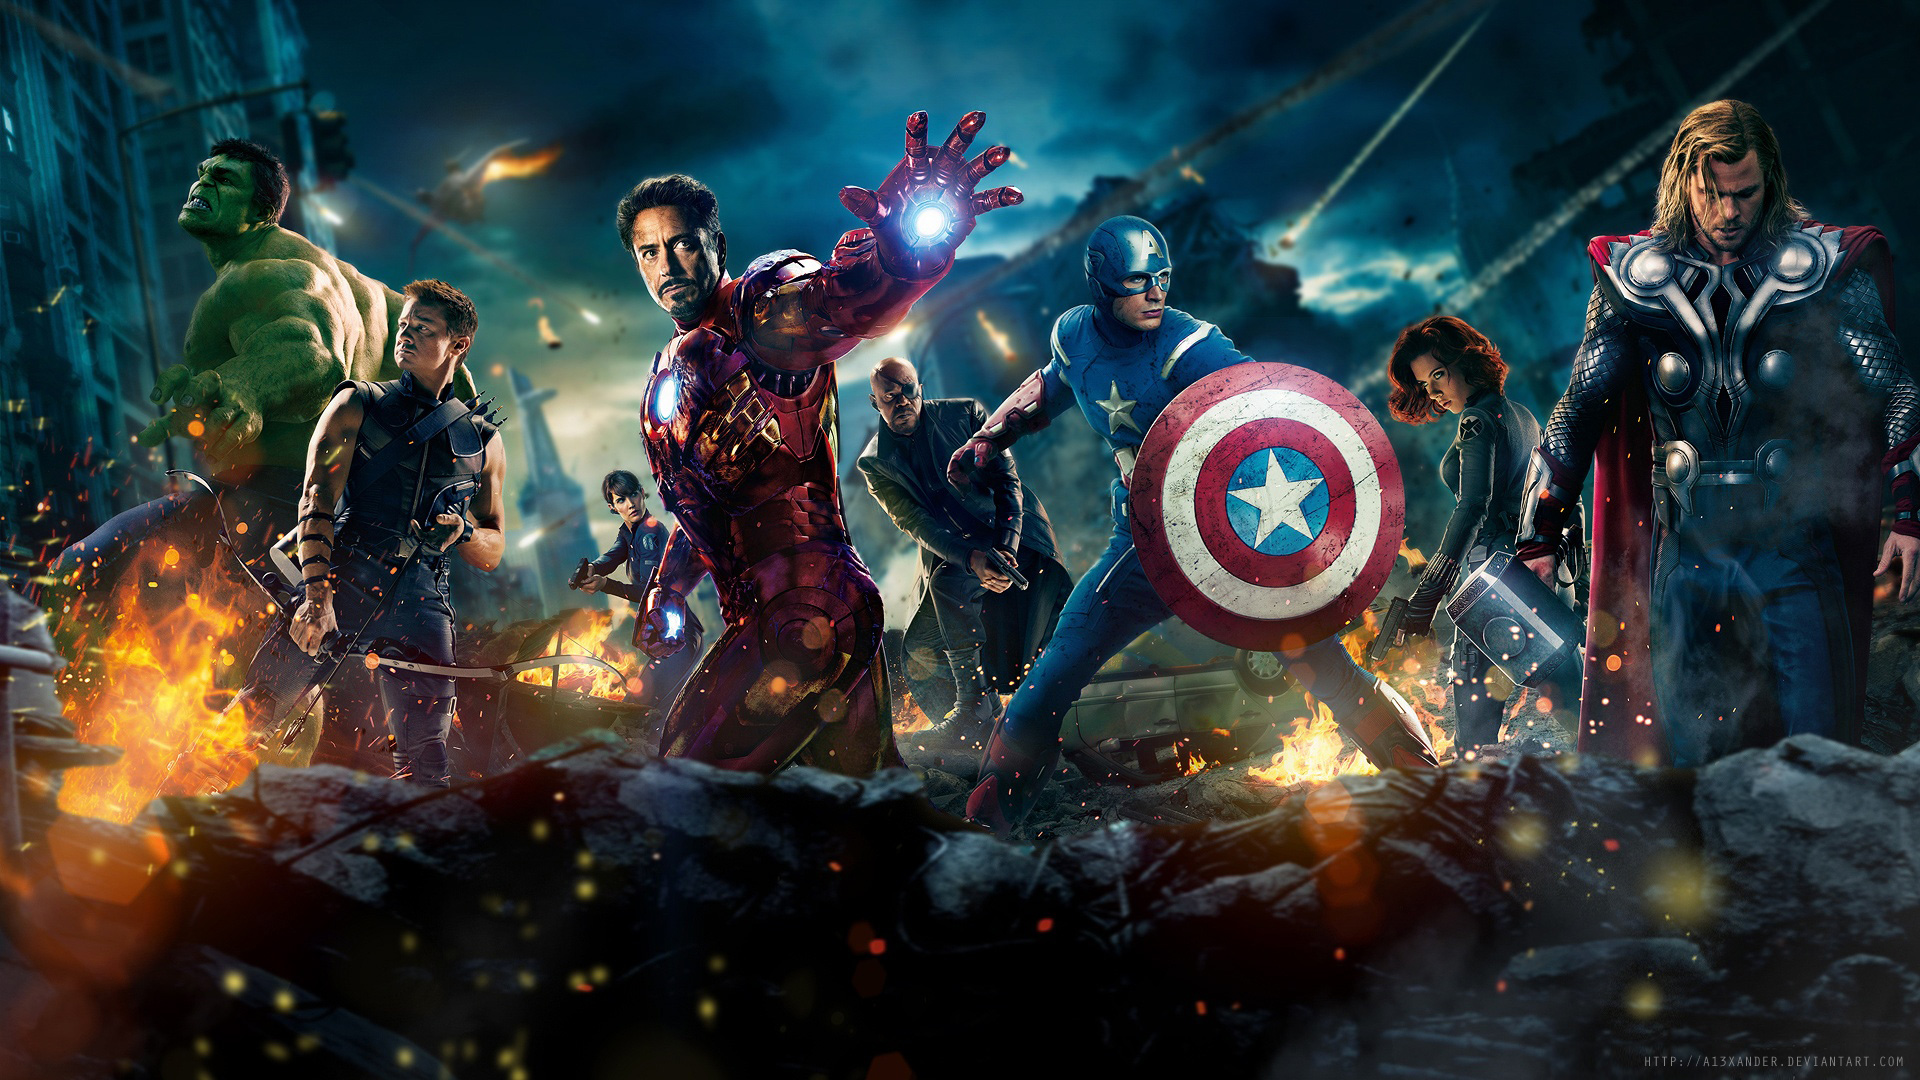 The Avengers full hd wallpaper the movie Full HD Wallpapers 1920x1080